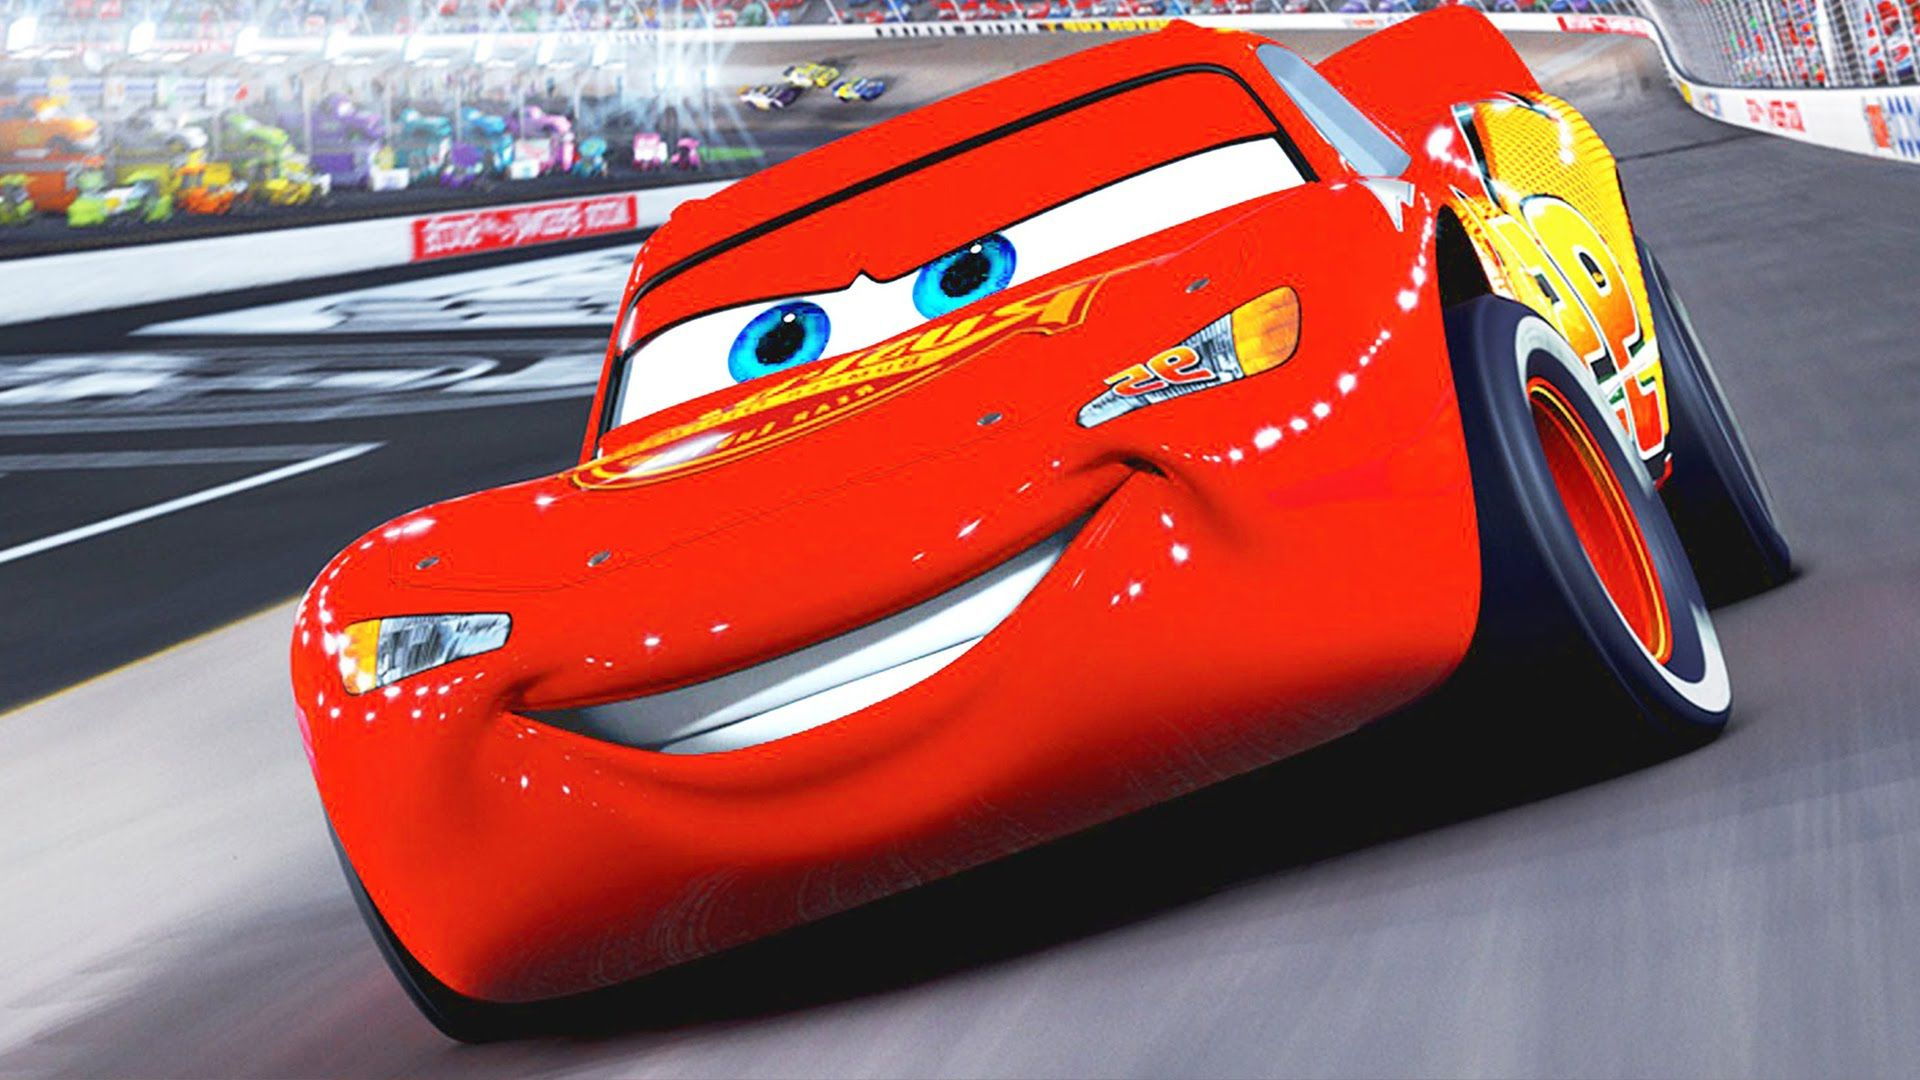 Lightning McQueen faces new rival in latest \'Cars 3\' movie trailer ...